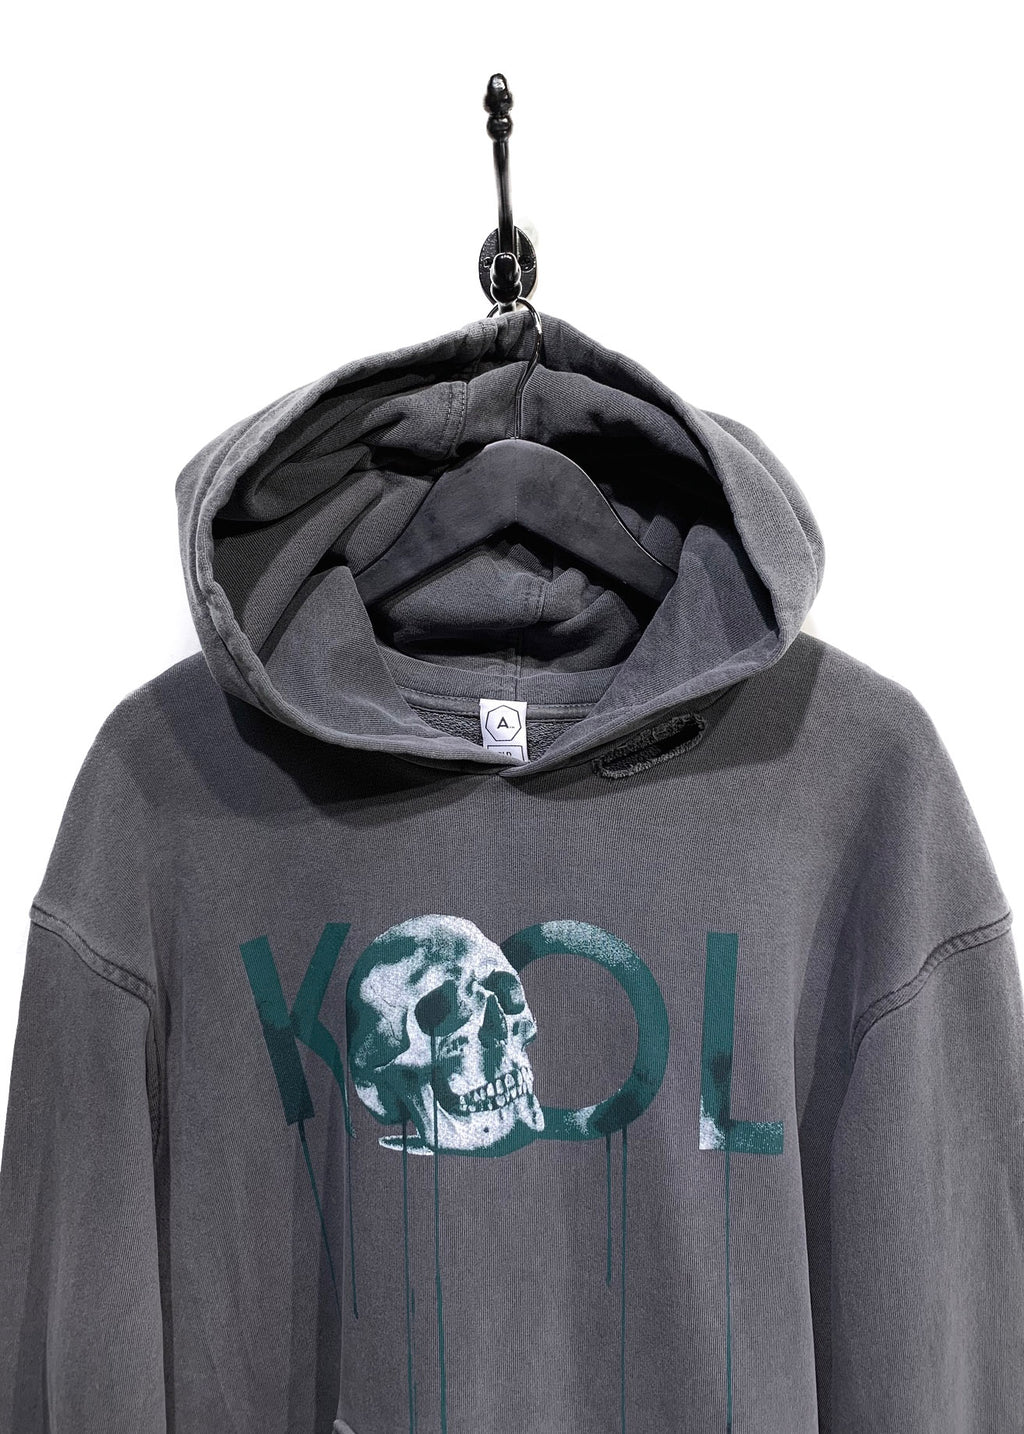 The Alchemist Hold Fast Grey Skull KOOL Distressed Hoodie